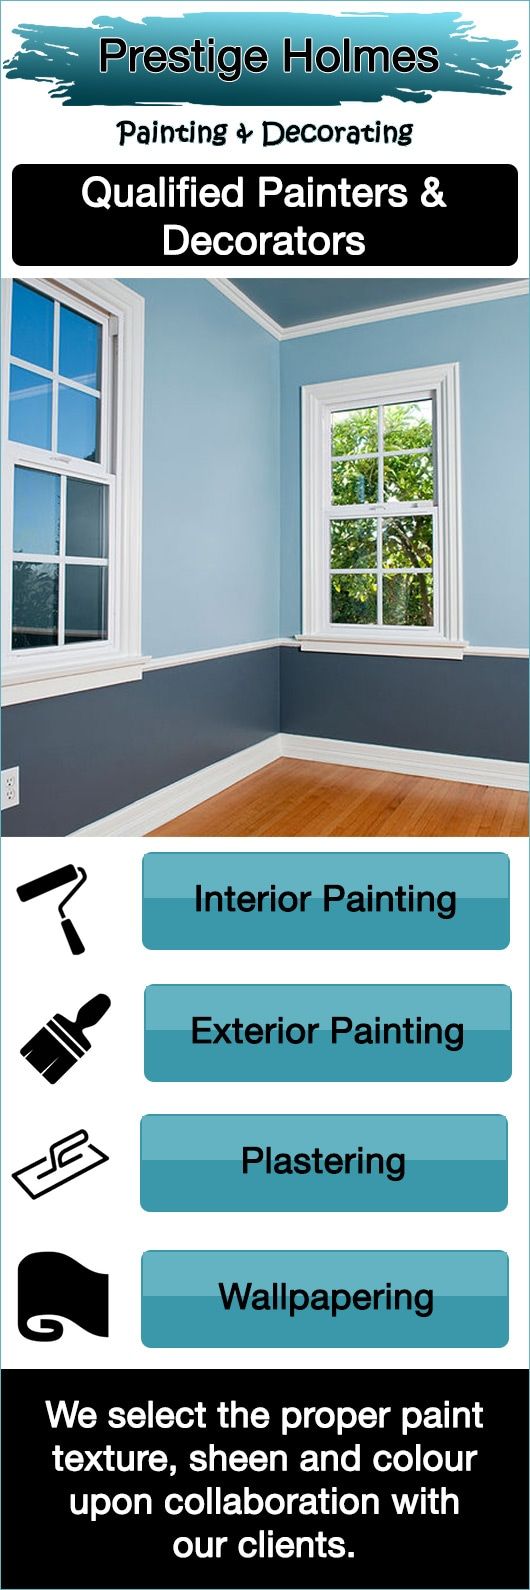 prestige holmes painting & decorating - painters & decorators